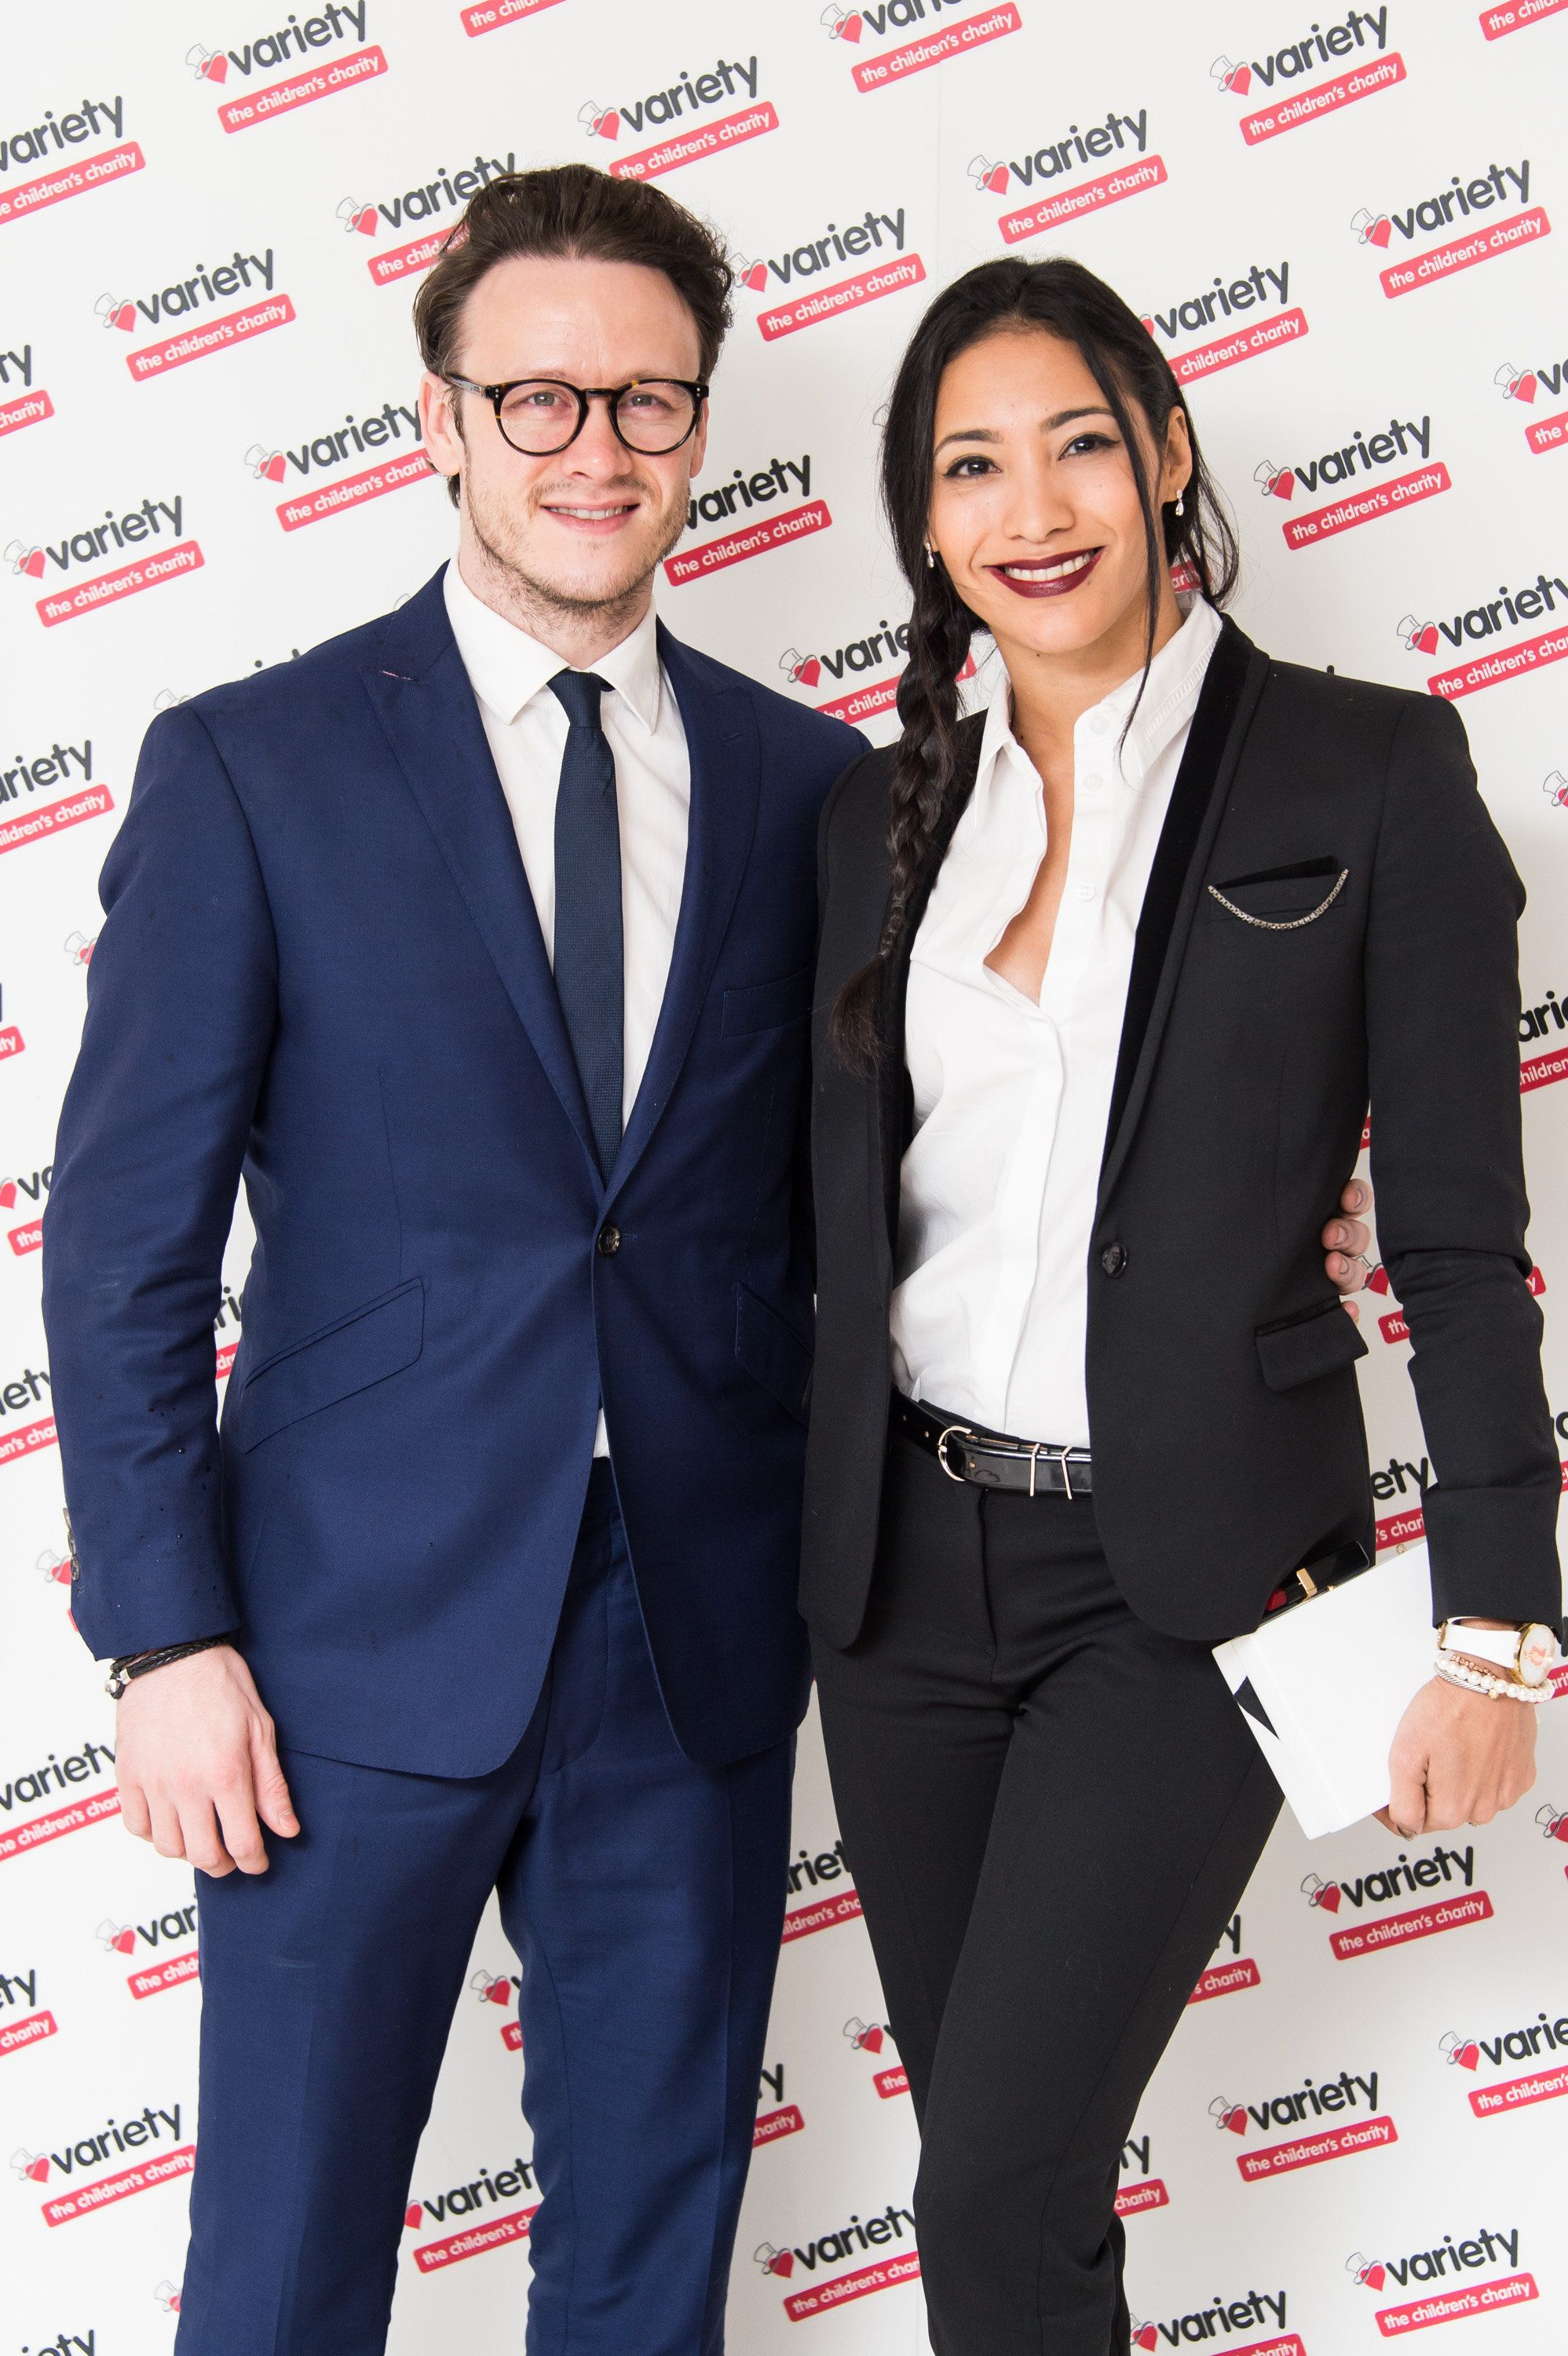 Kevin And Karen Clifton Say They Went Public With Split So Fans Could See Past 'Fairytale